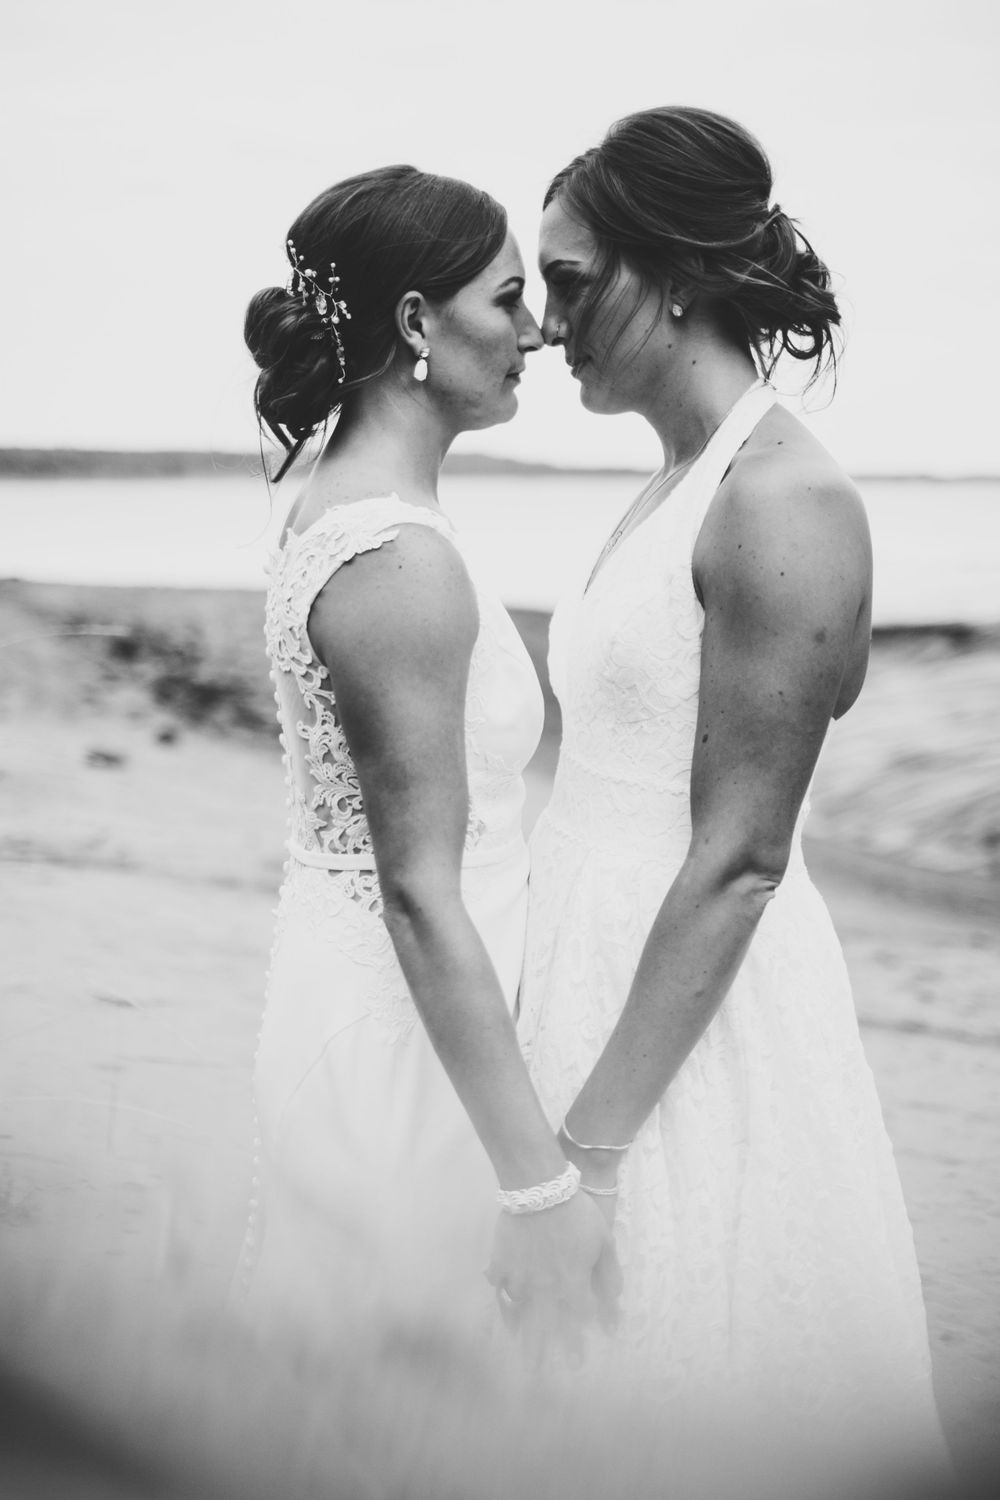 lesbian wedding lgtbq two brides standing facing one another